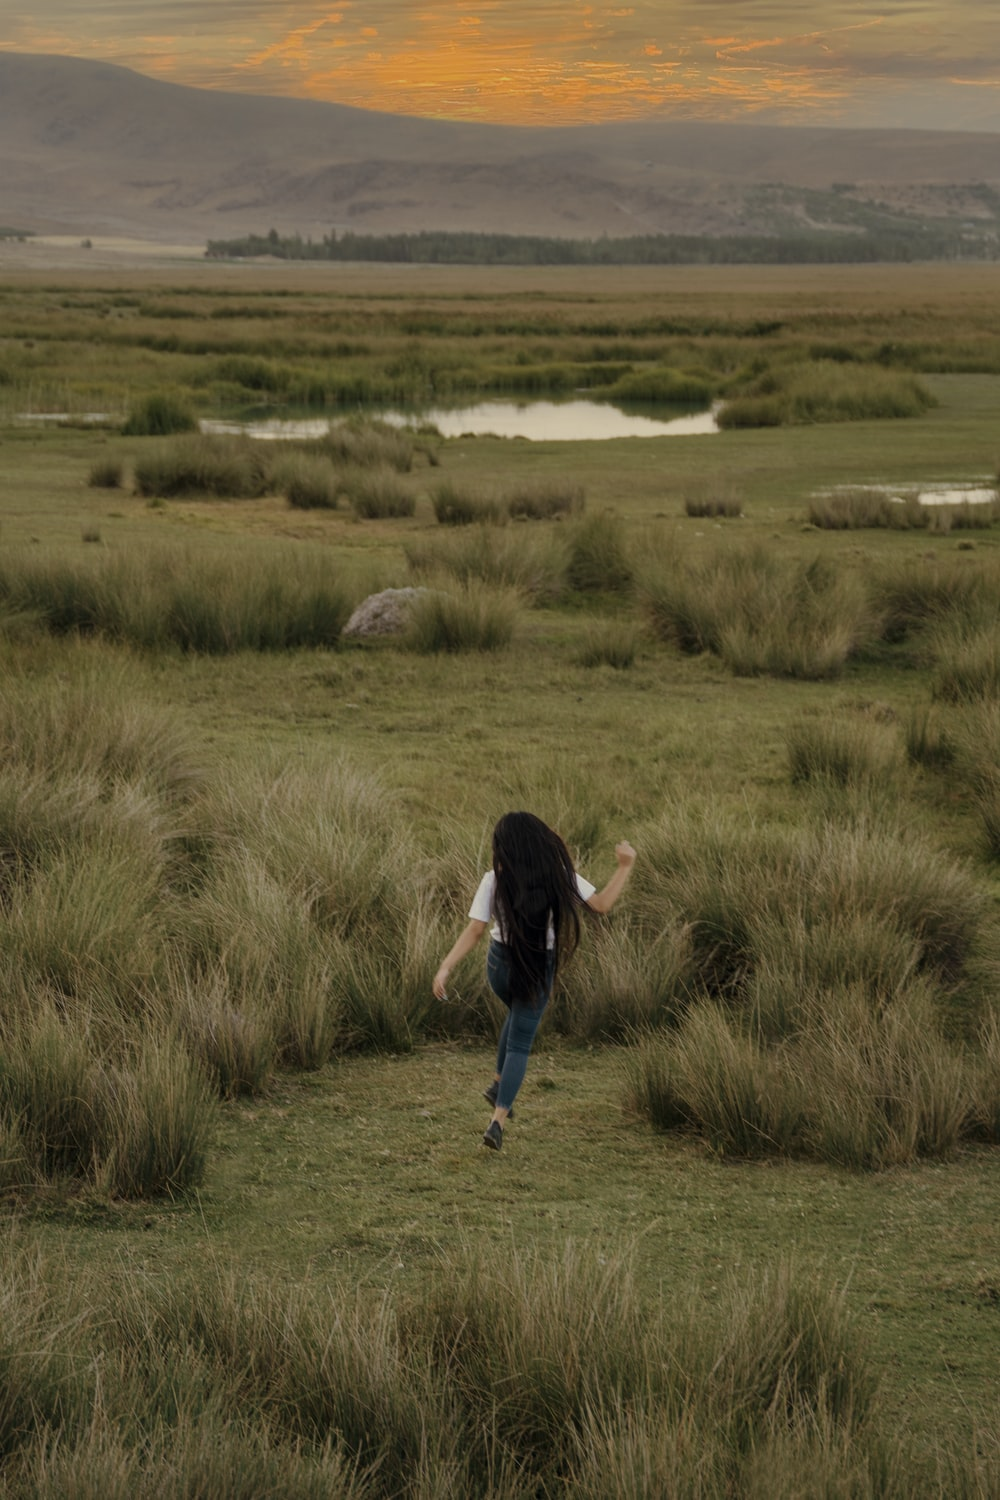 woman in black shirt and blue denim jeans walking on green grass field during daytime